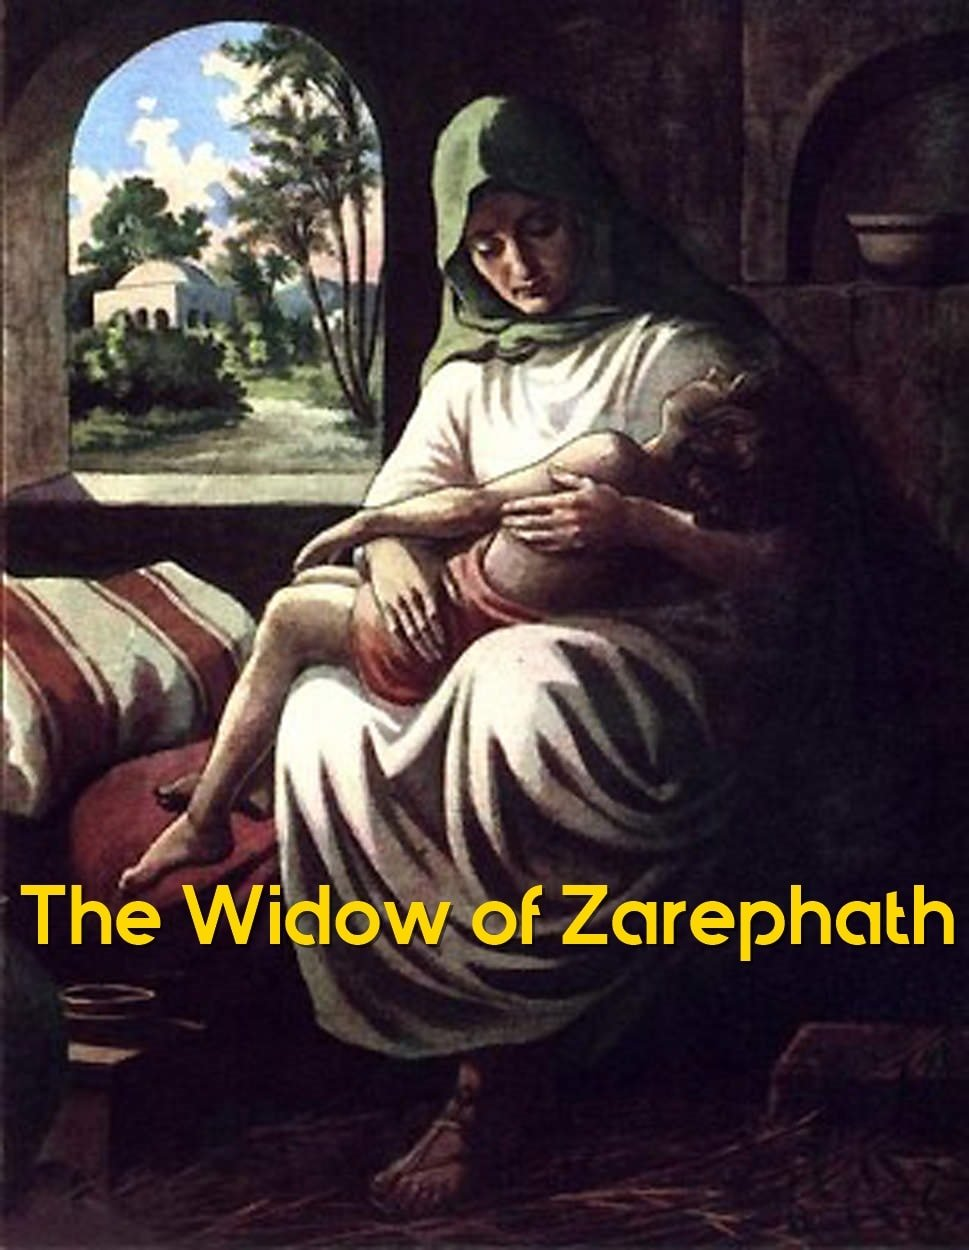 The widow of Zarephath